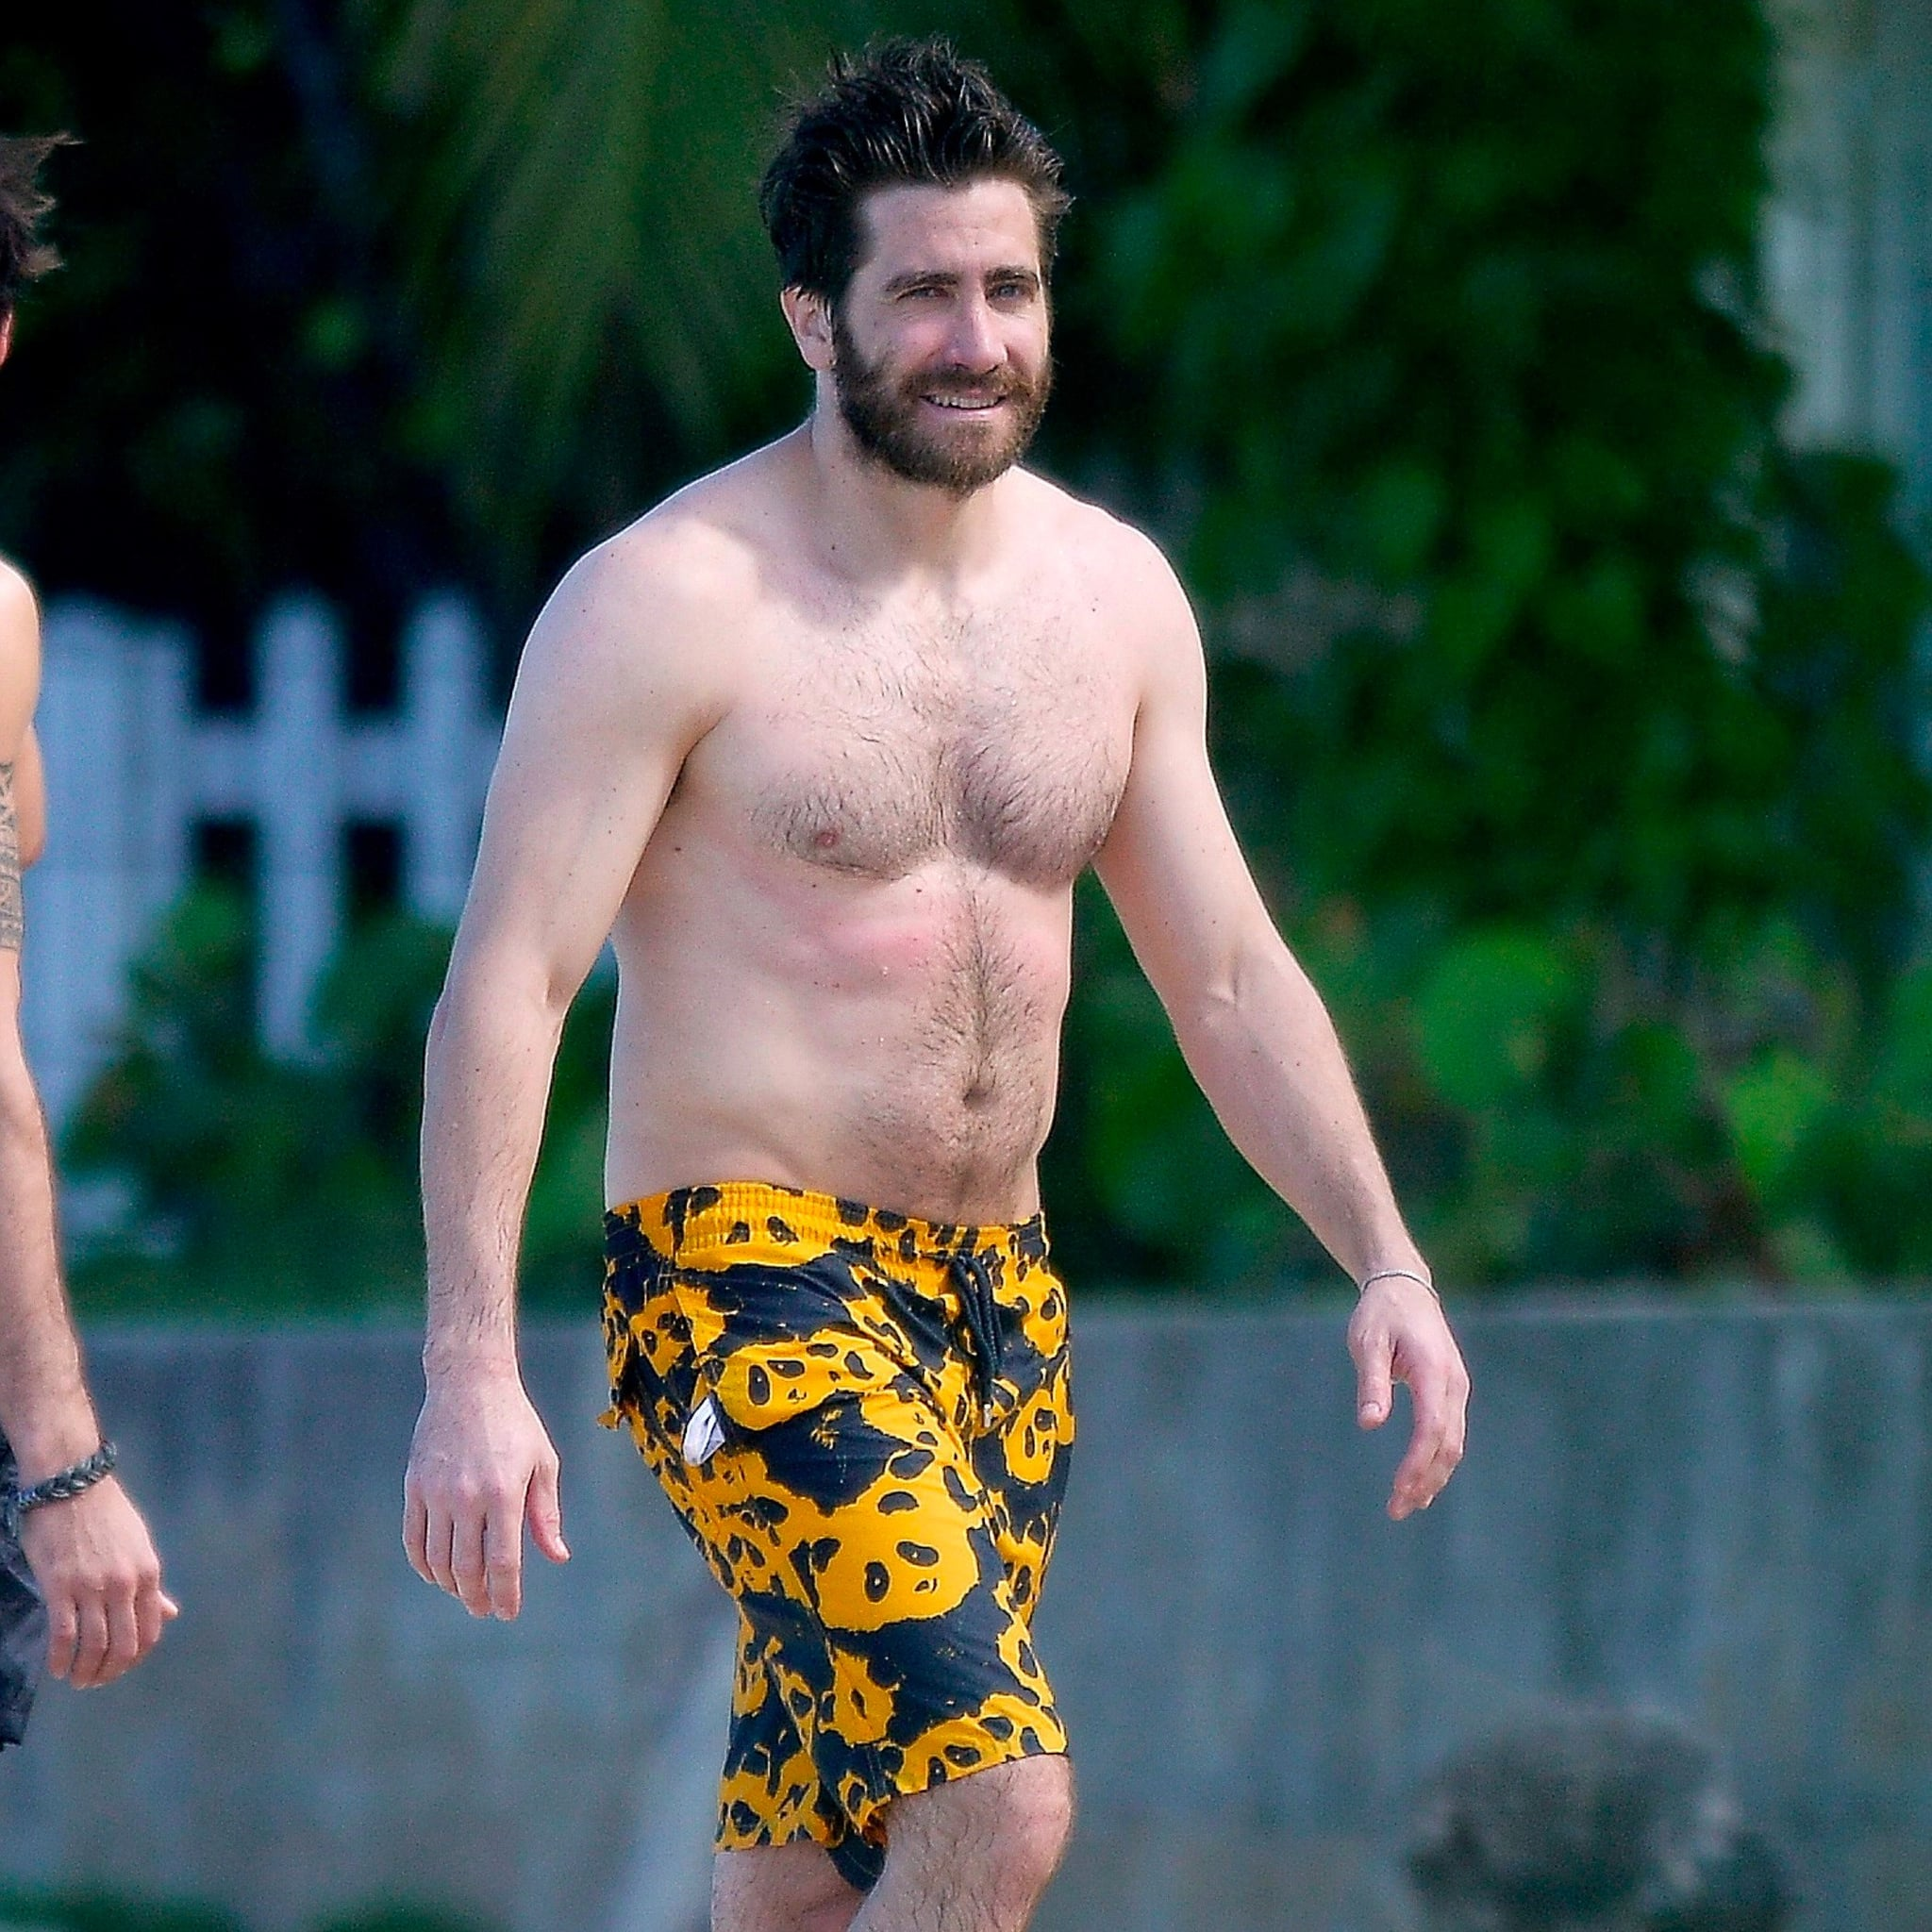 Jake-Gyllenhaal-Shirtless-Pictures.jpg